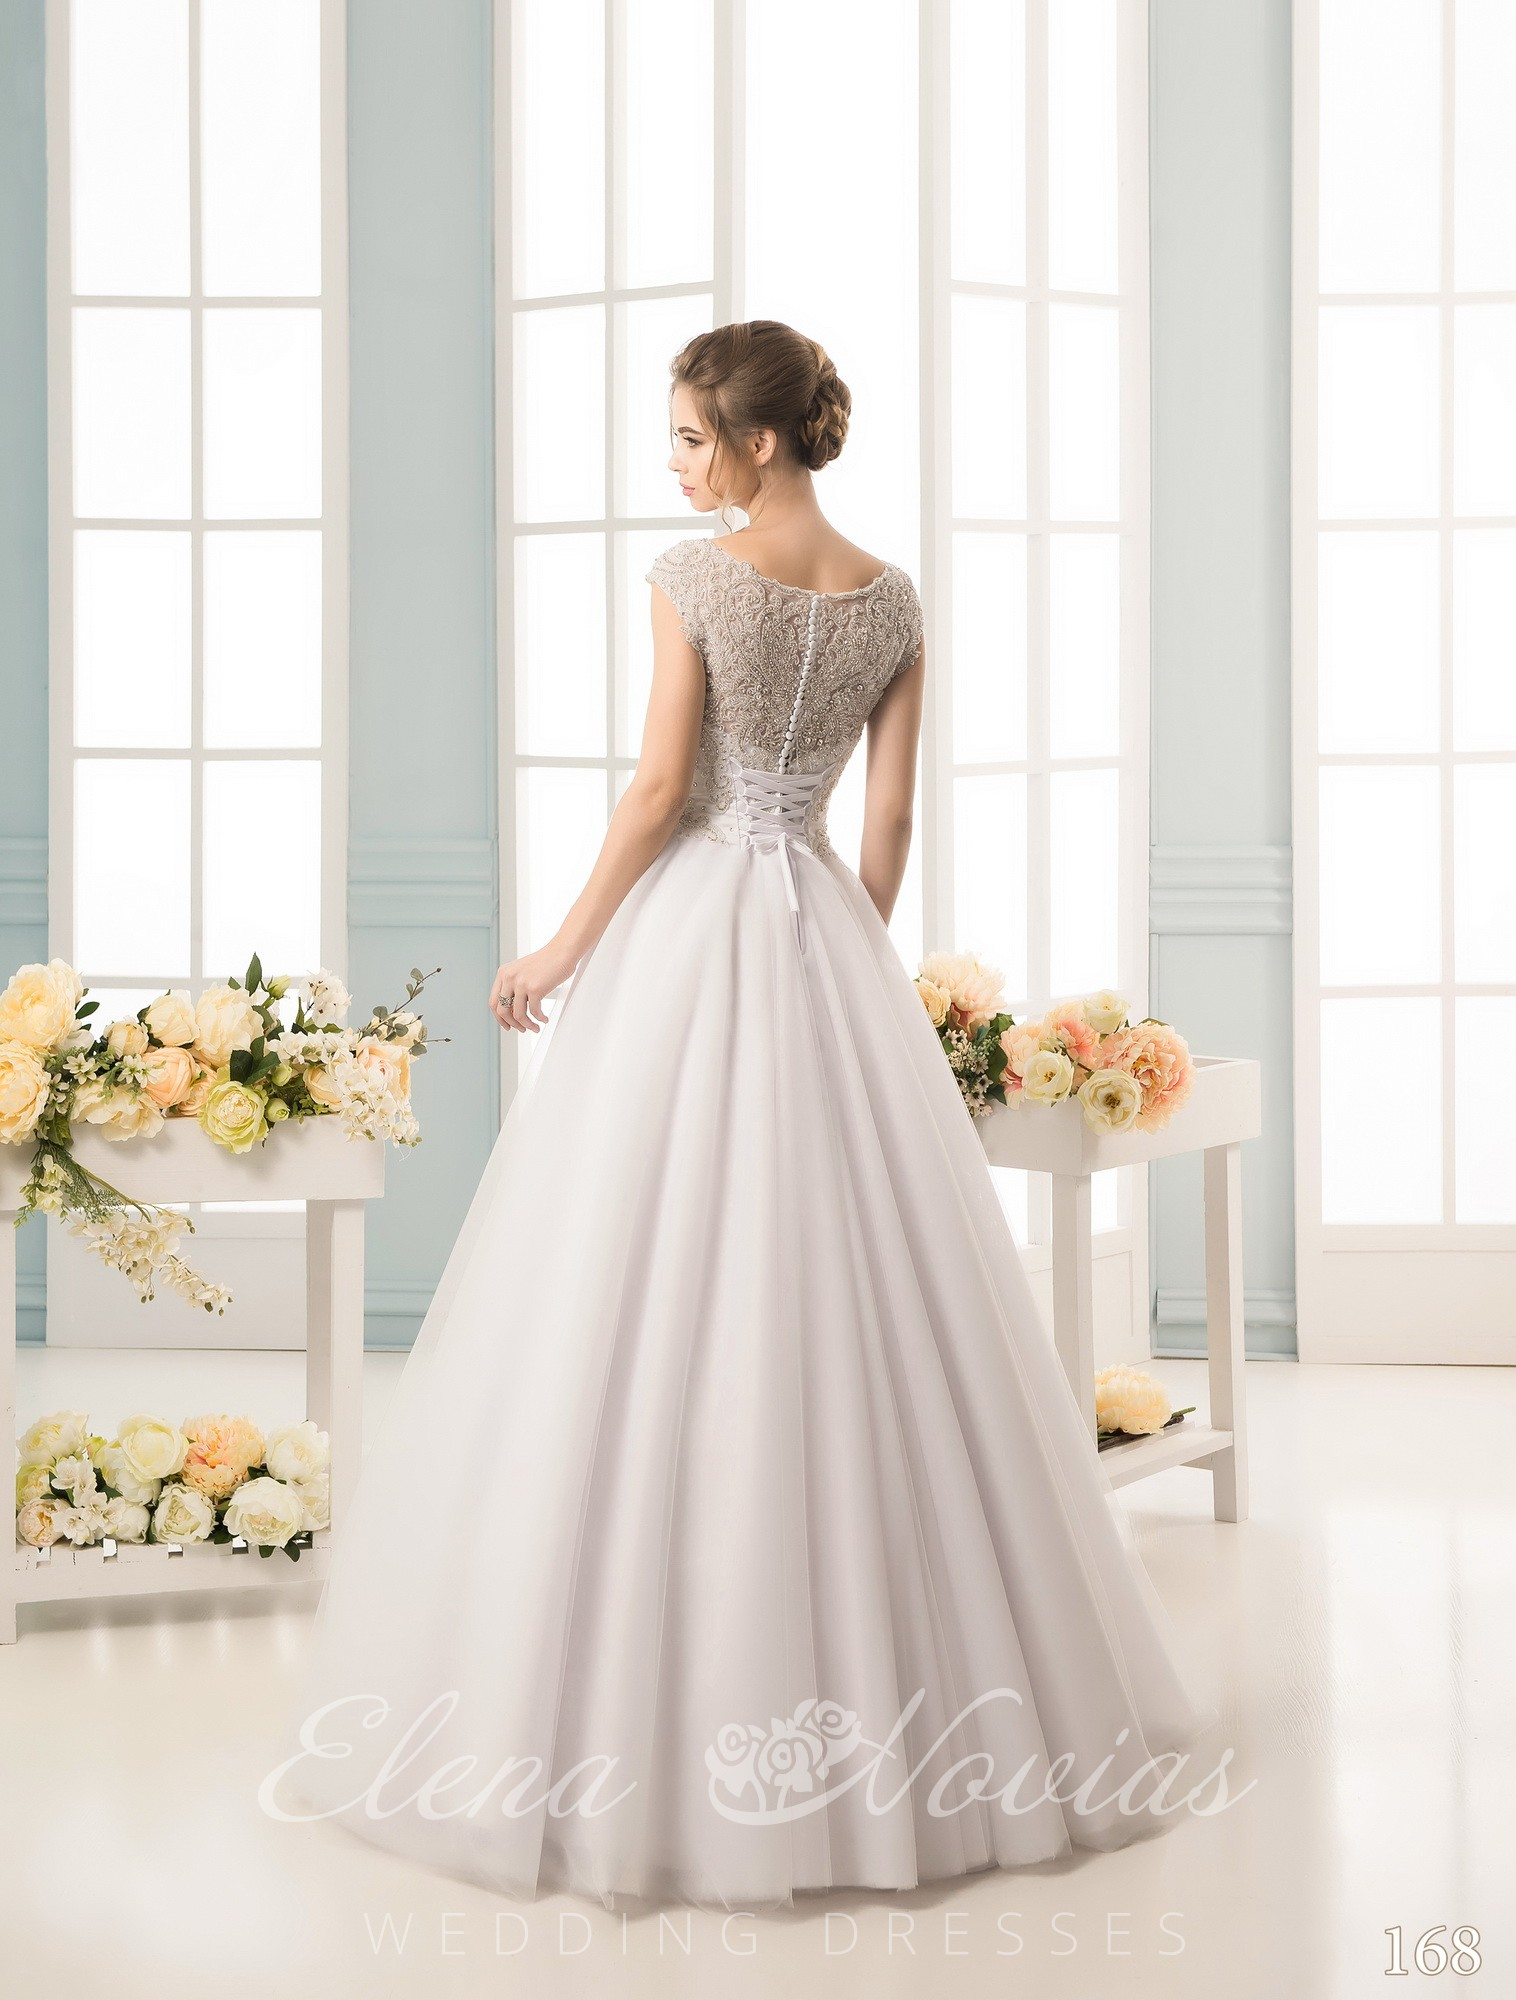 Wedding dress wholesale 168